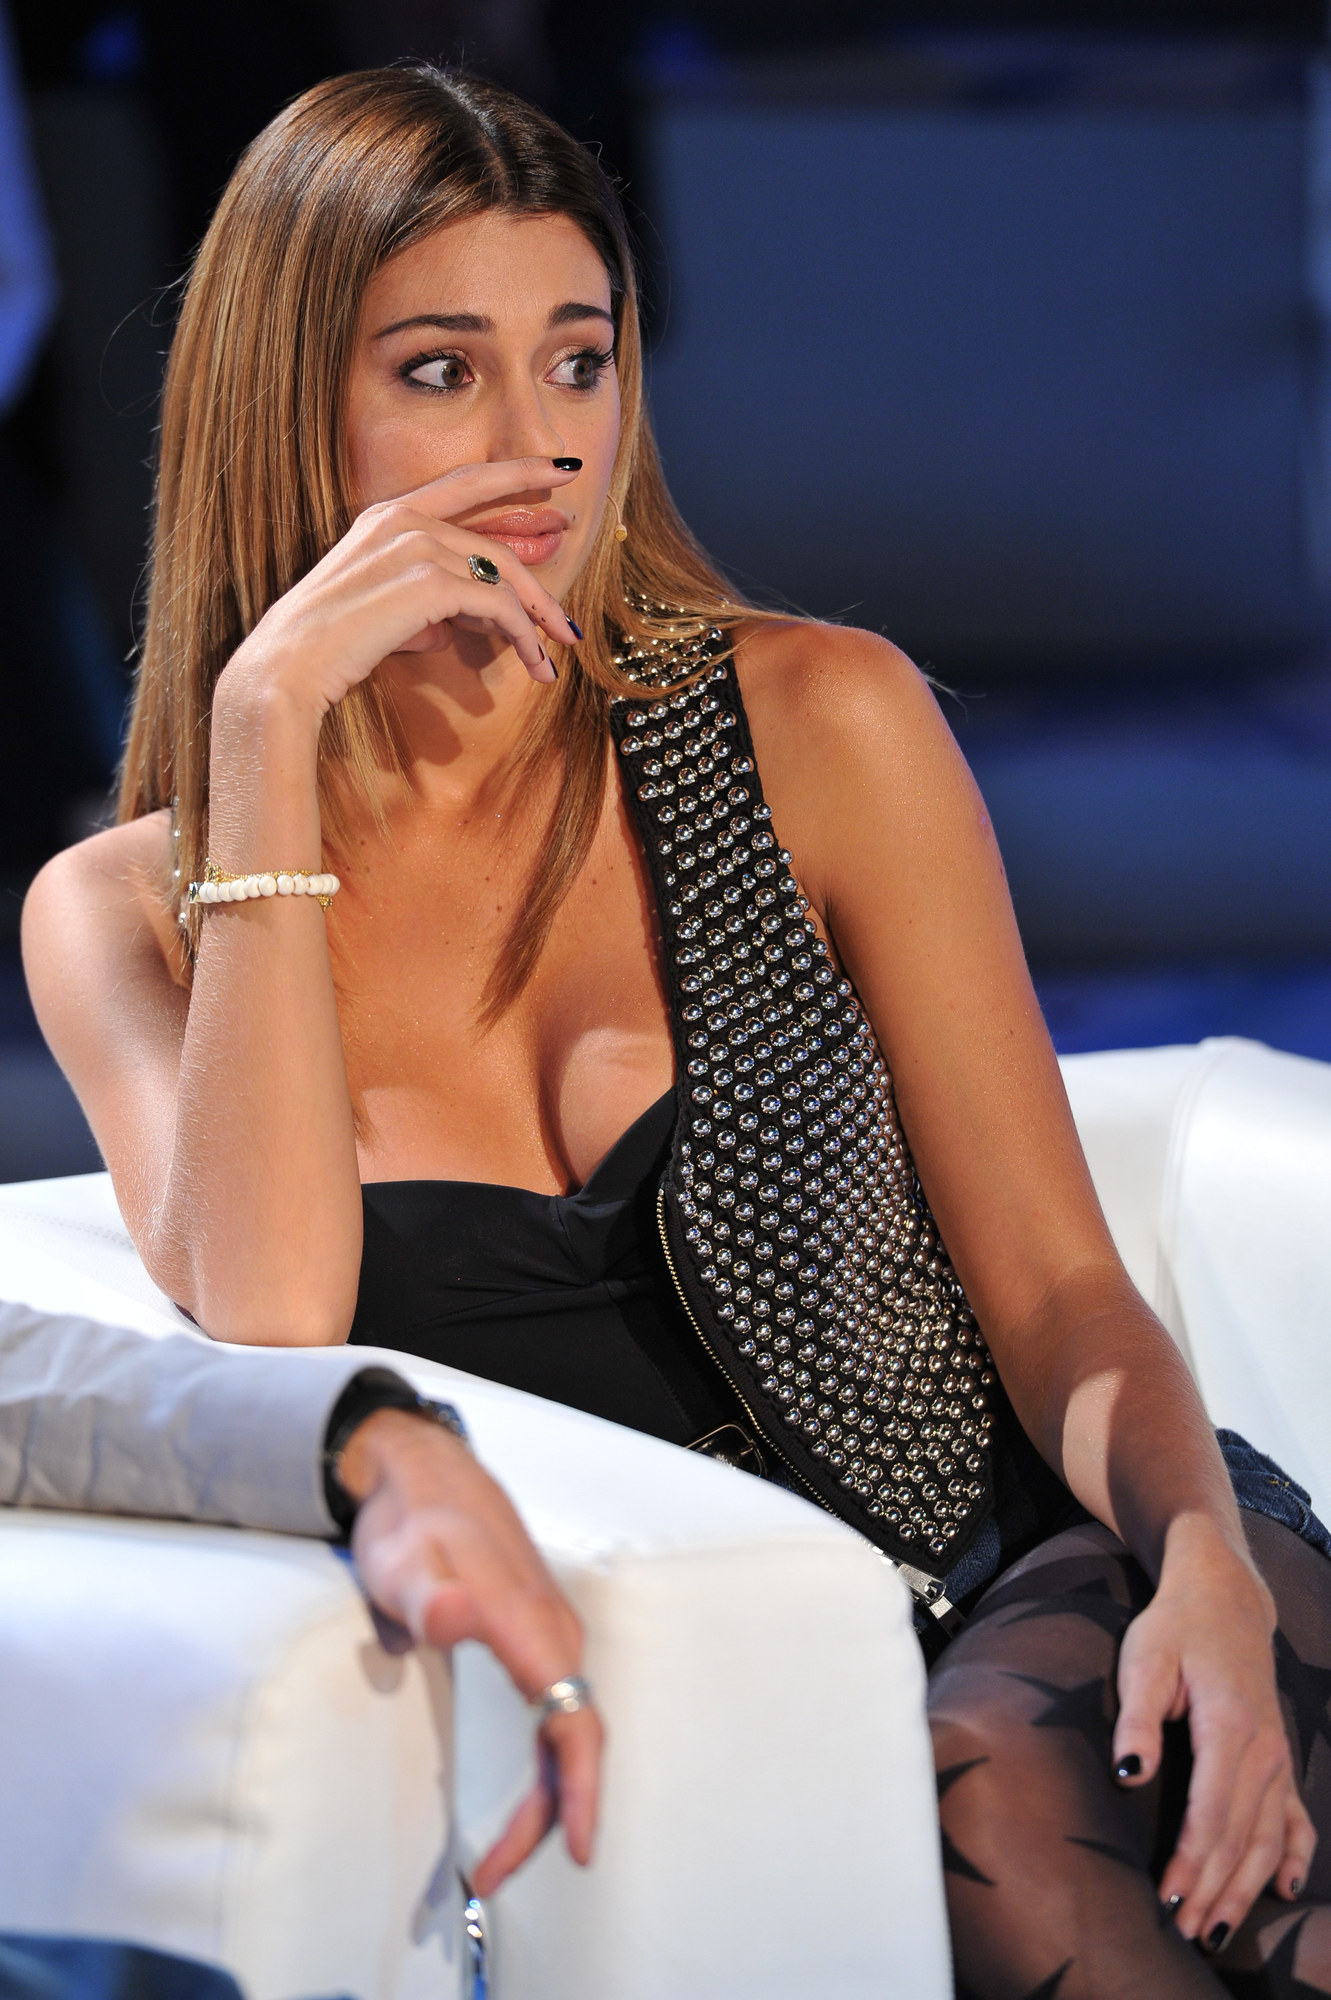 Belen Rodriguez Cleavage Candids on Italian TV show Domenica Cinque